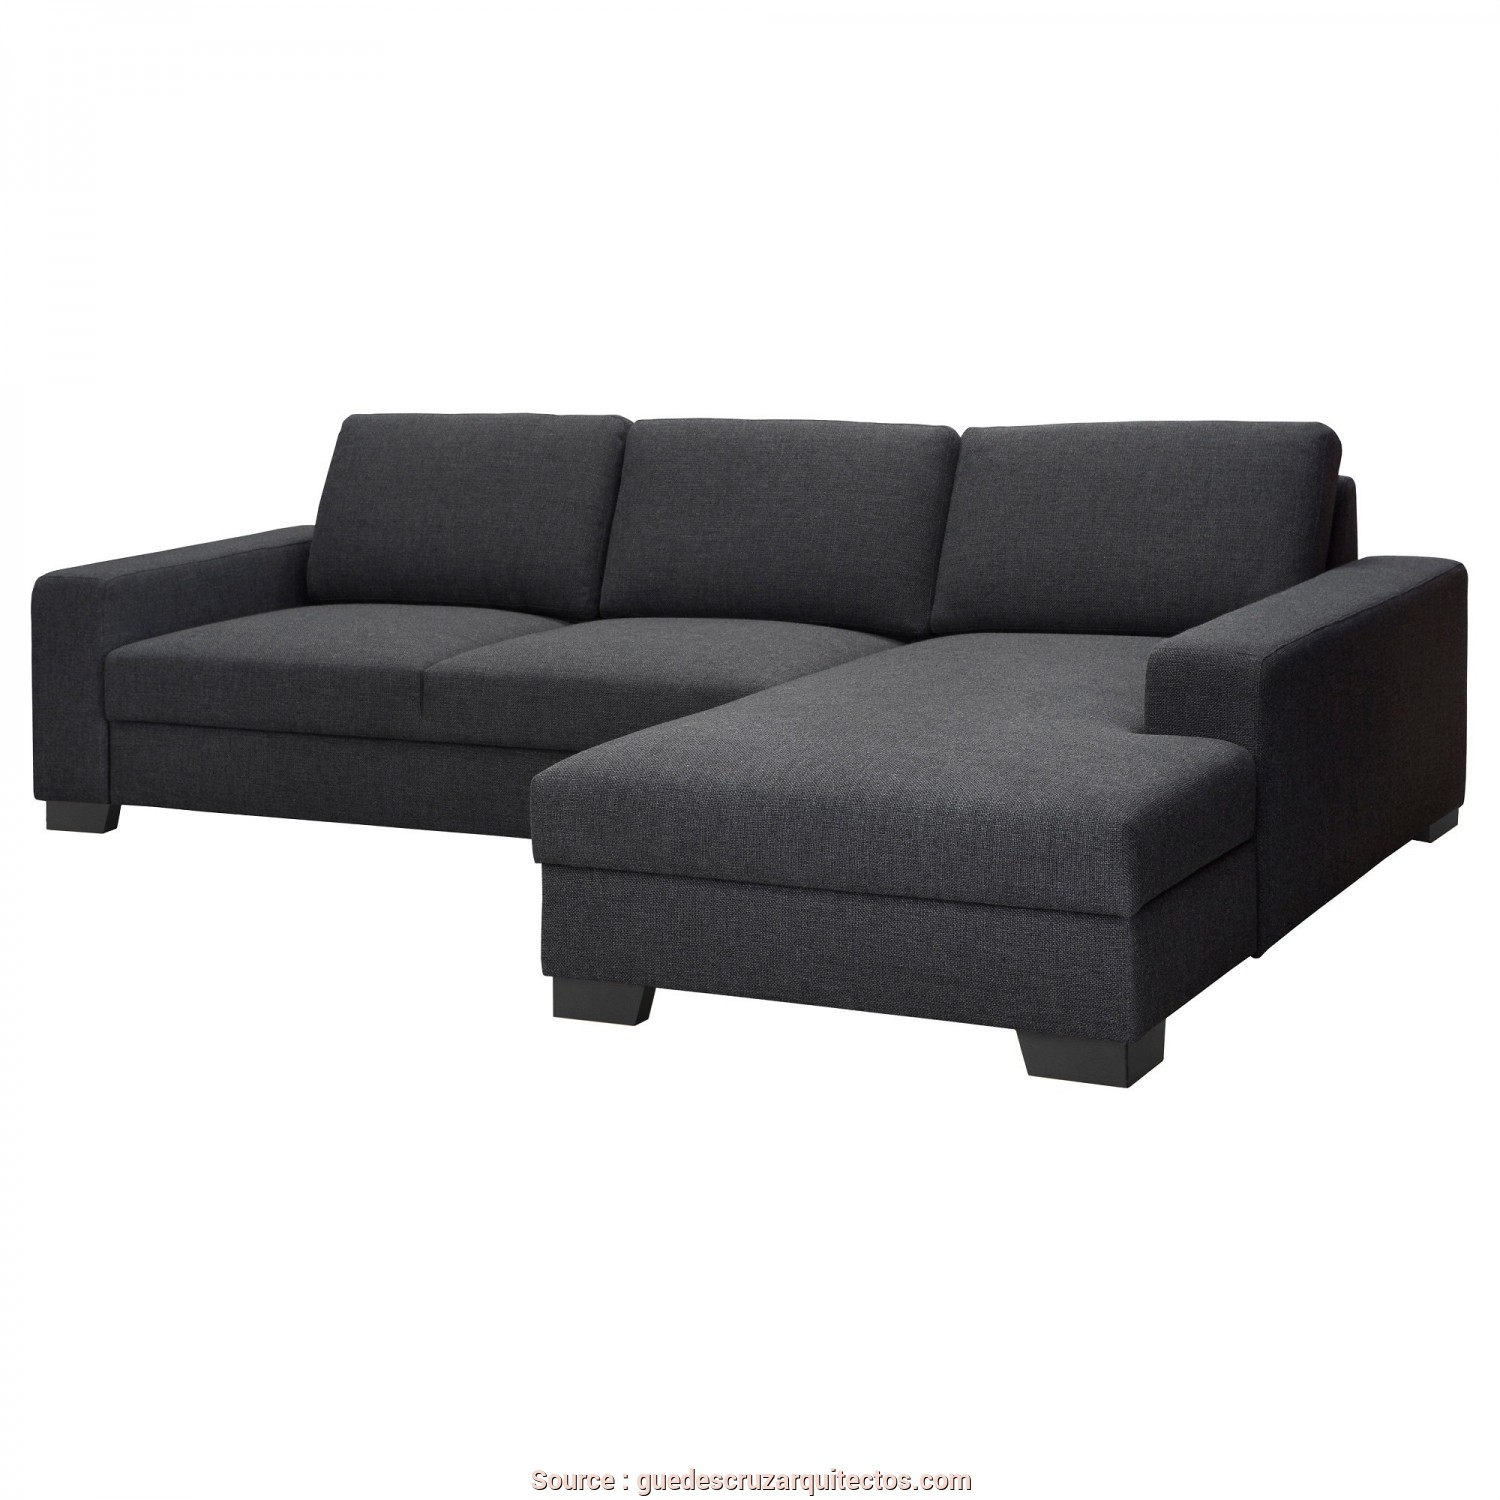 Backabro Ecksofa Affascinante 5 Ikea Backabro Kaufen Jake Vintage